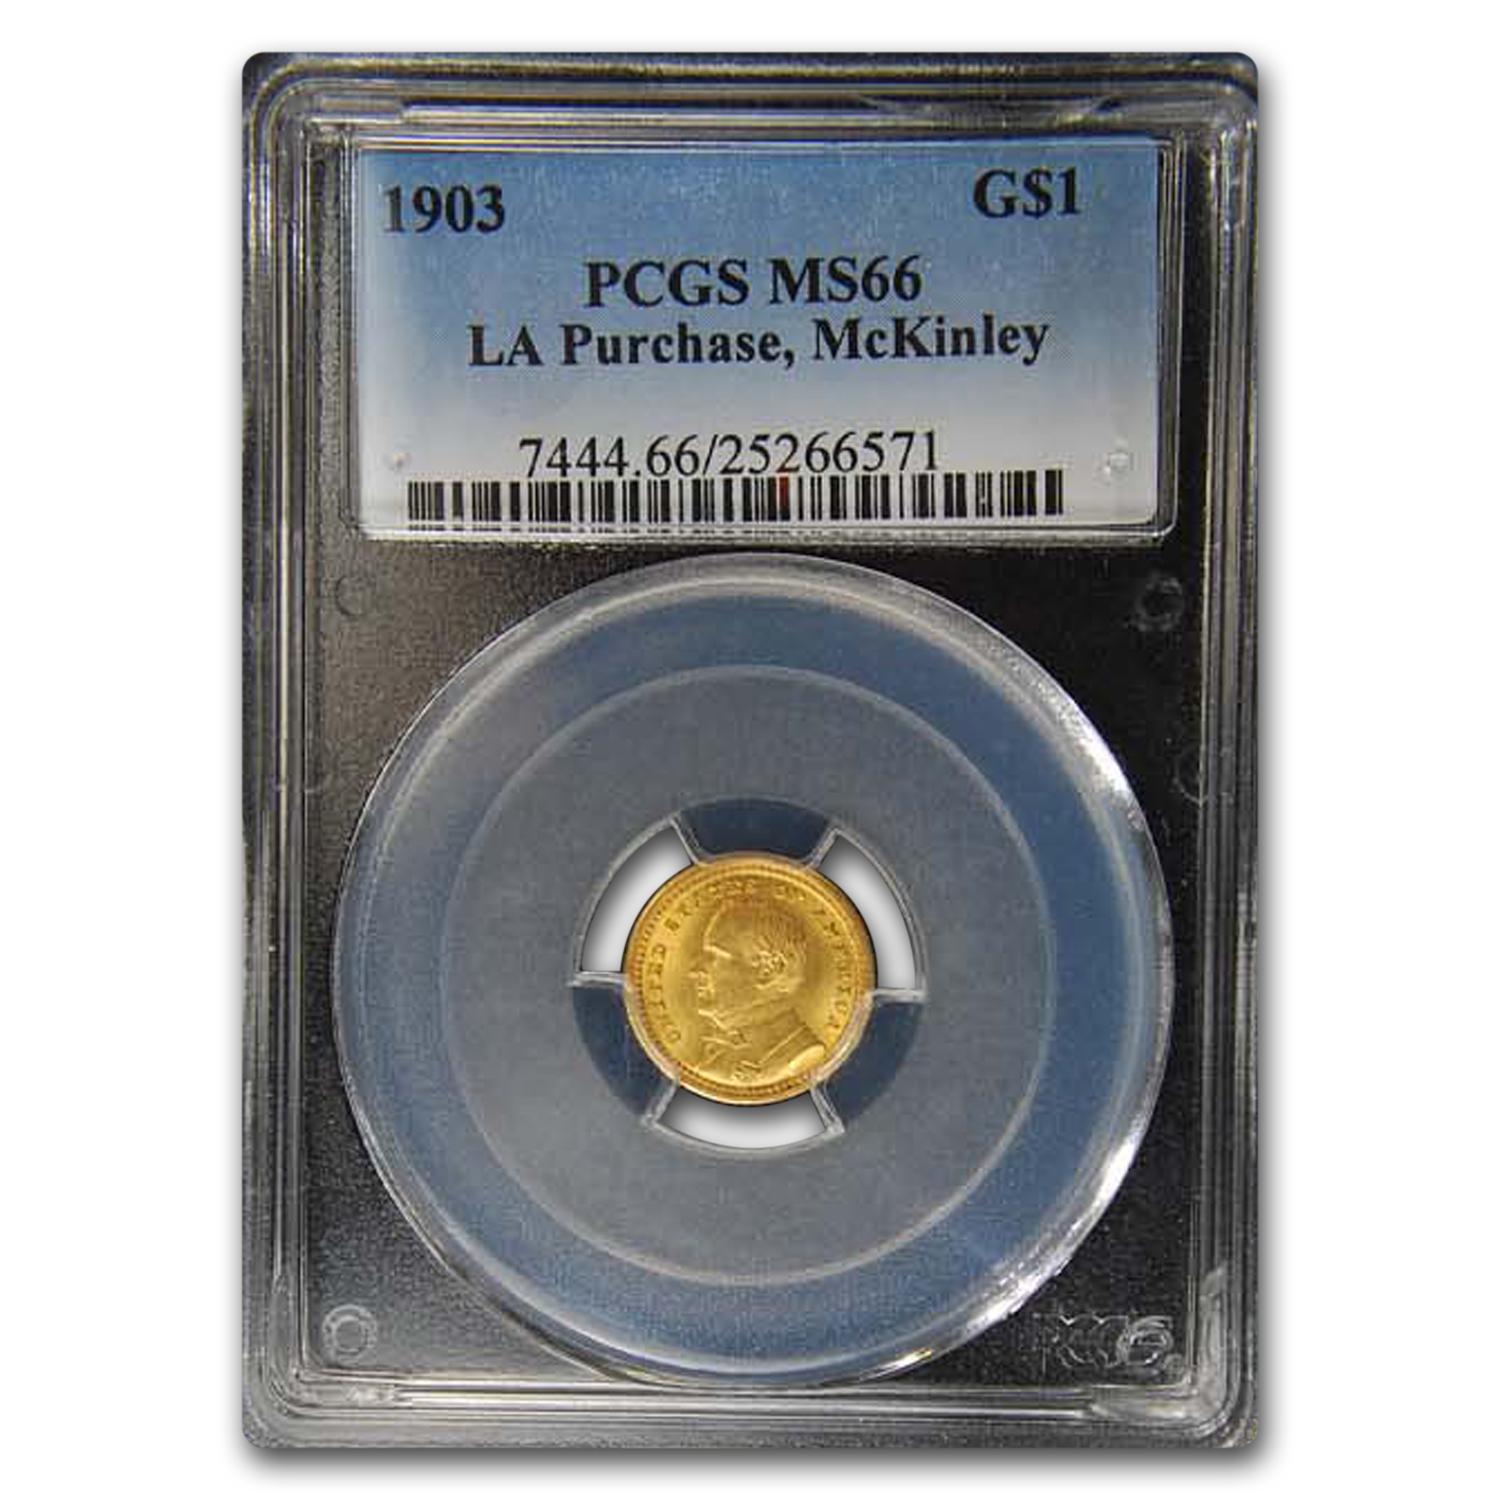 1903 Gold $1 Louisiana Purchase McKinley MS-66 PCGS